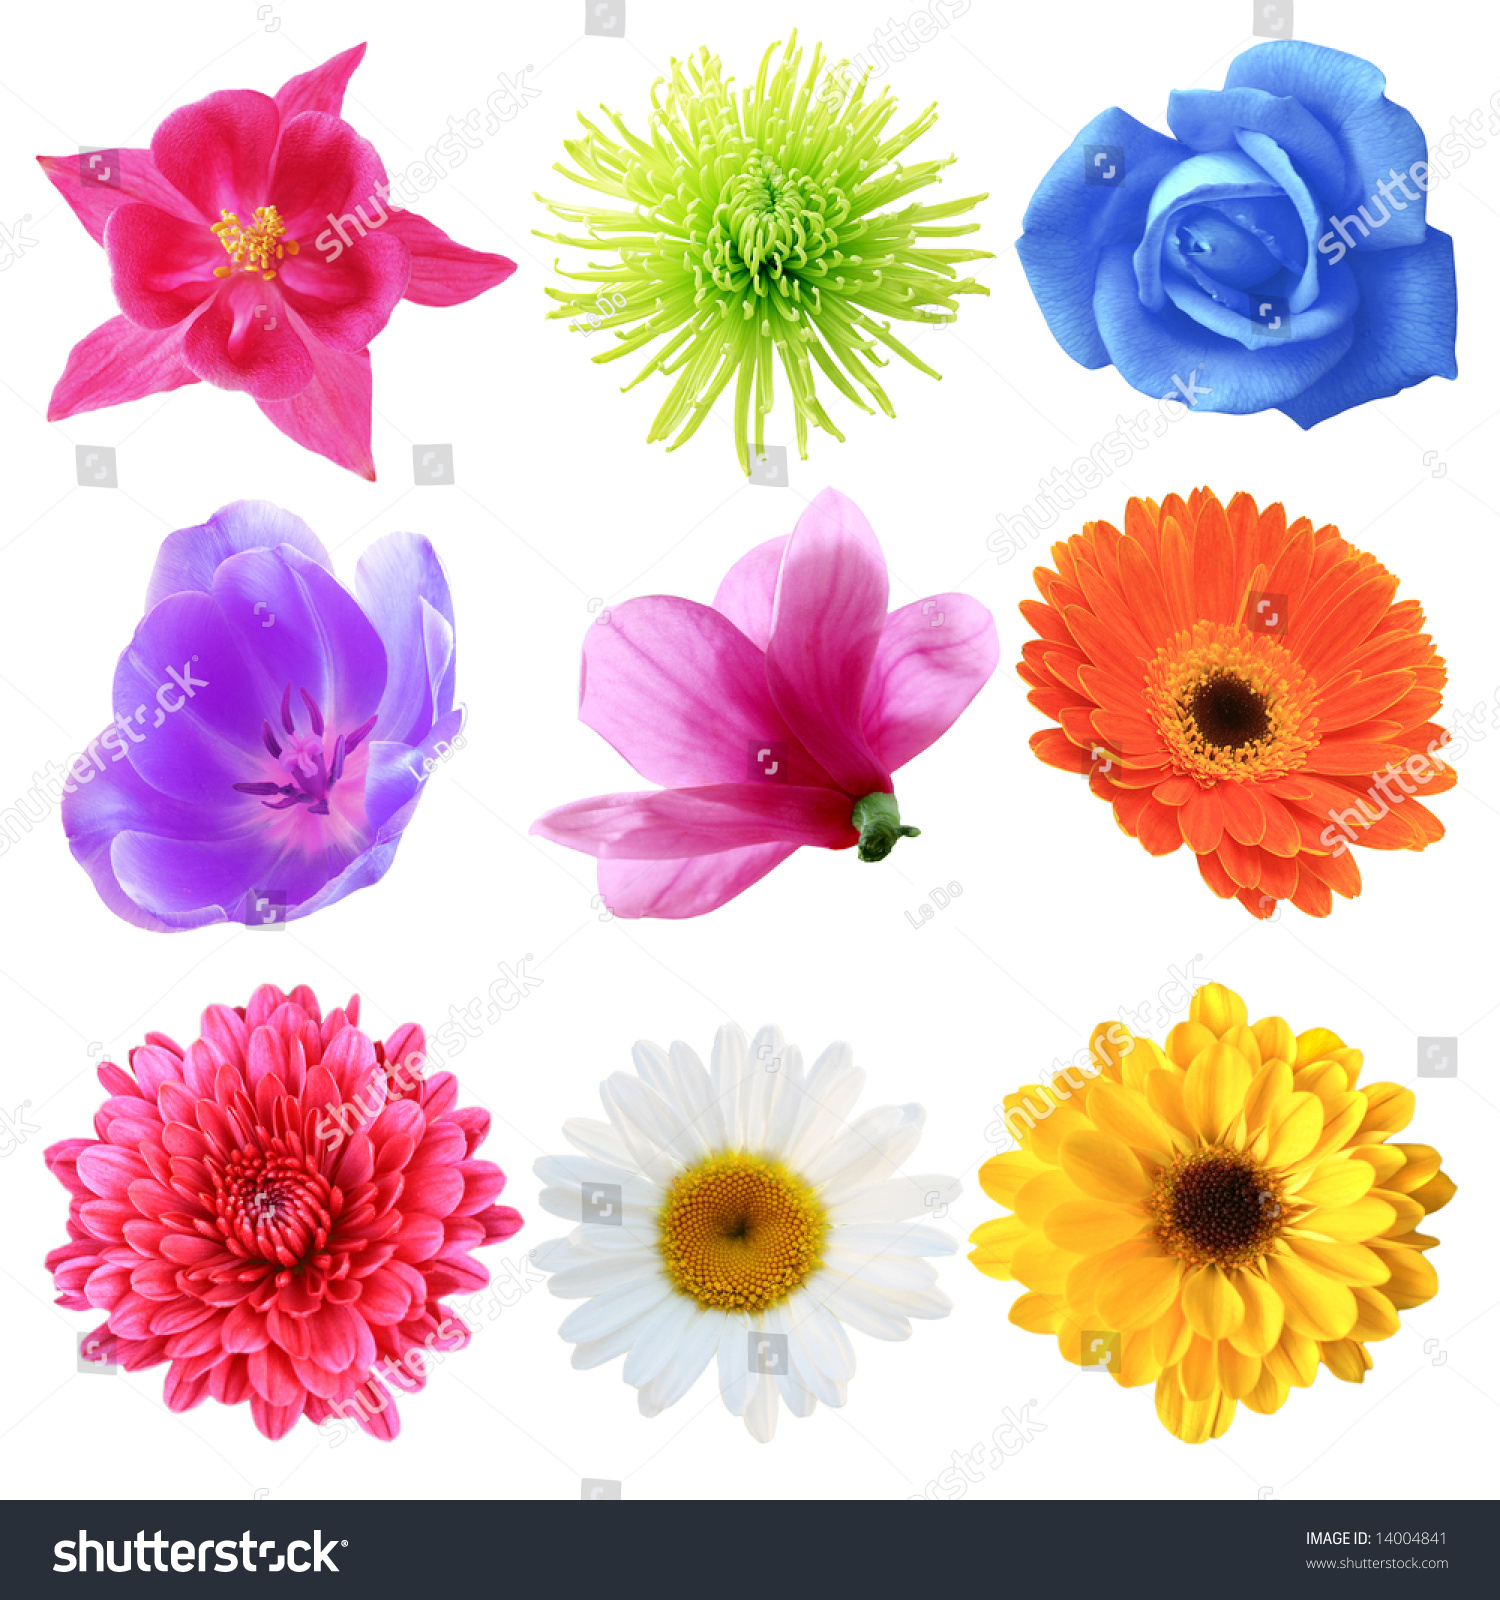 set flowers different shapes color stock photo   shutterstock, Natural flower